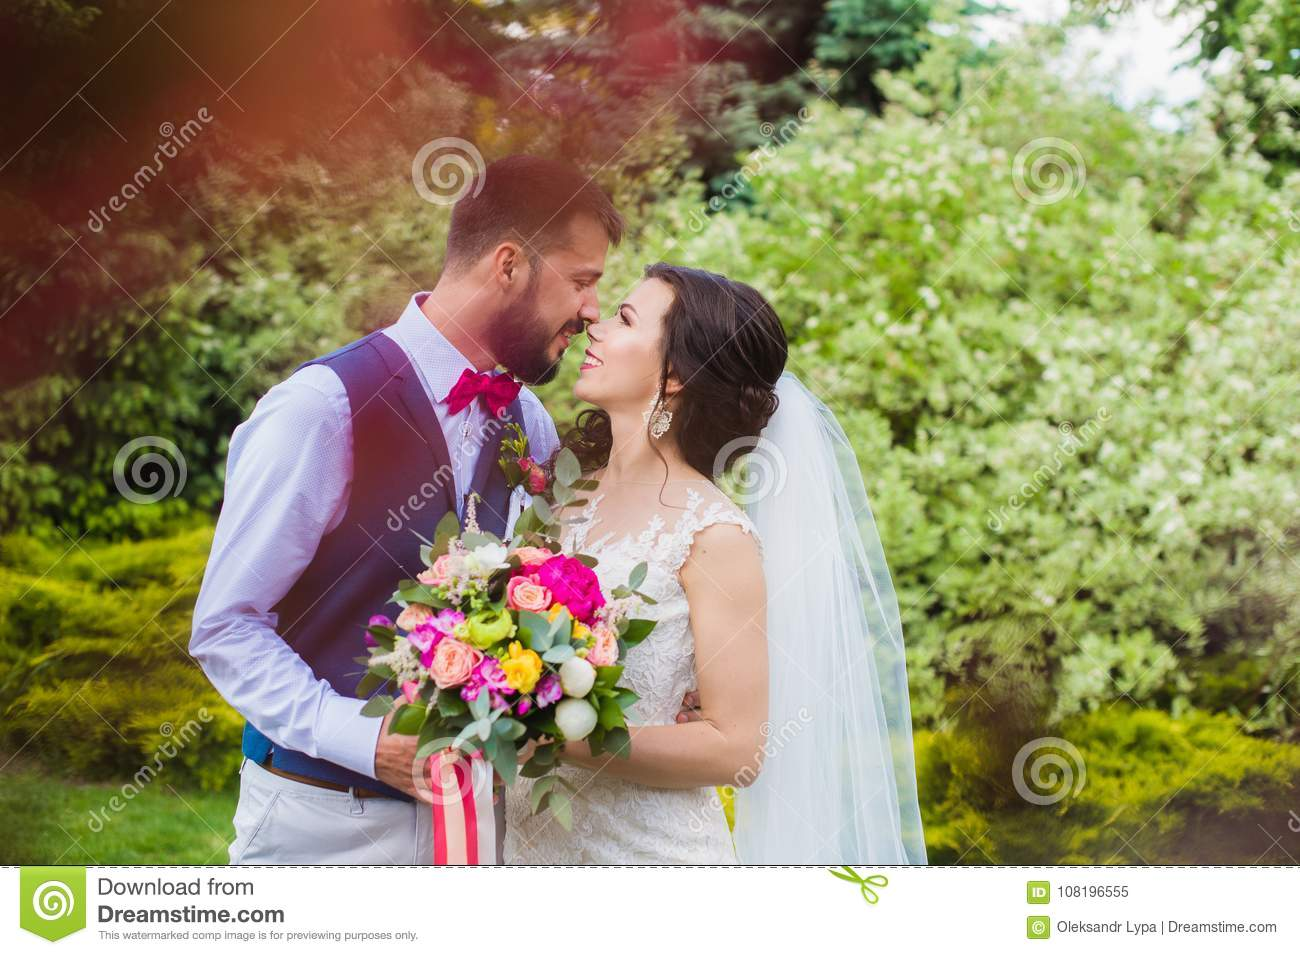 Happy just married couple kissing in the green garden beautiful stylish bride and groom became husband and wife posing in their wedding day